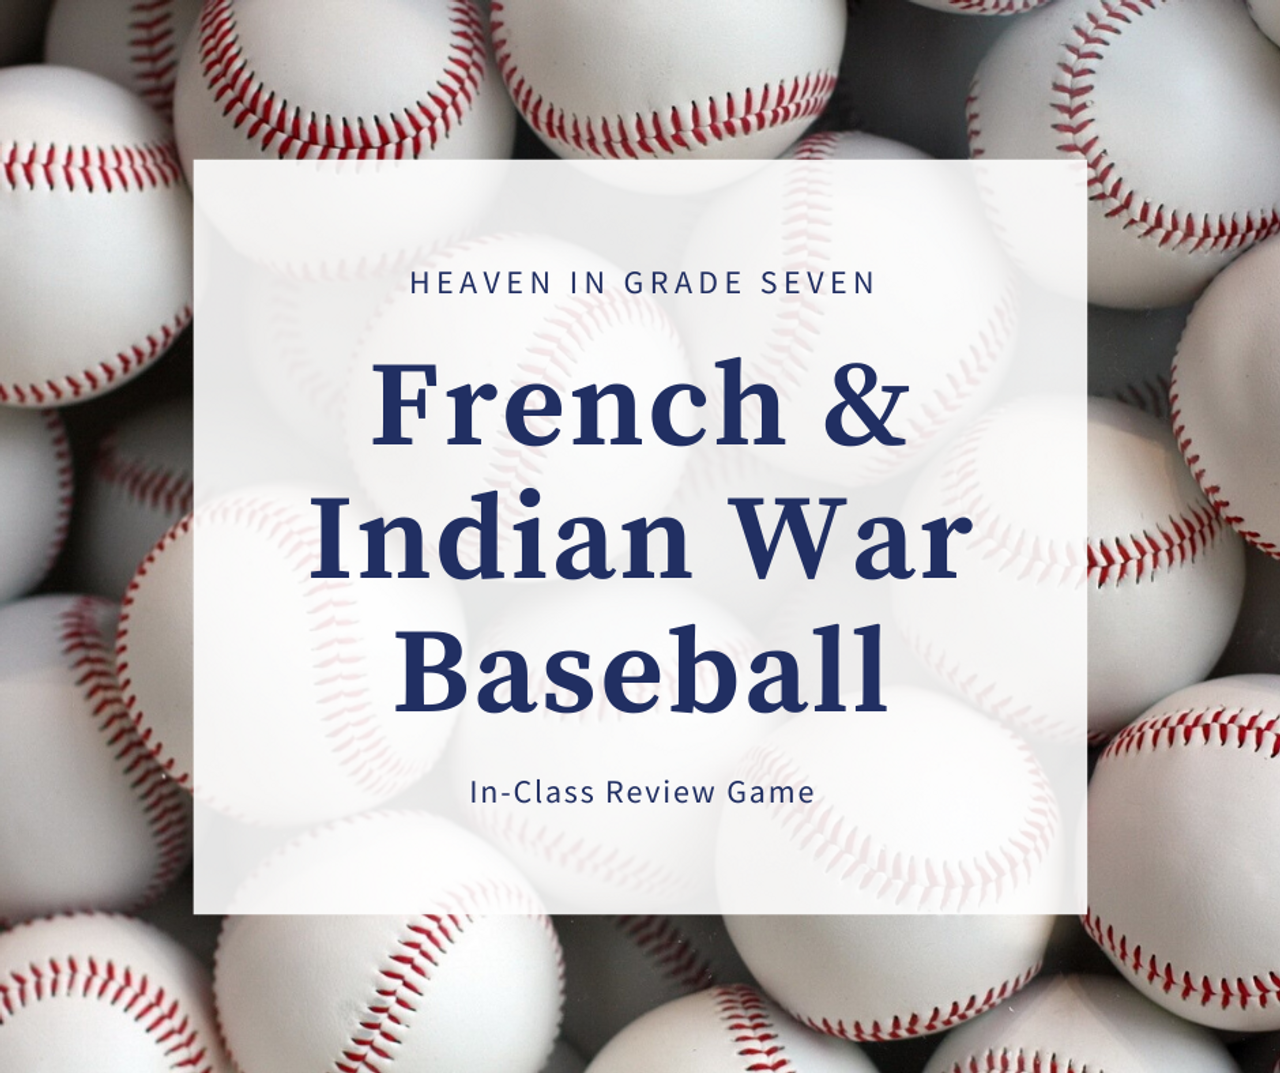 French & Indian War - Baseball Review Game